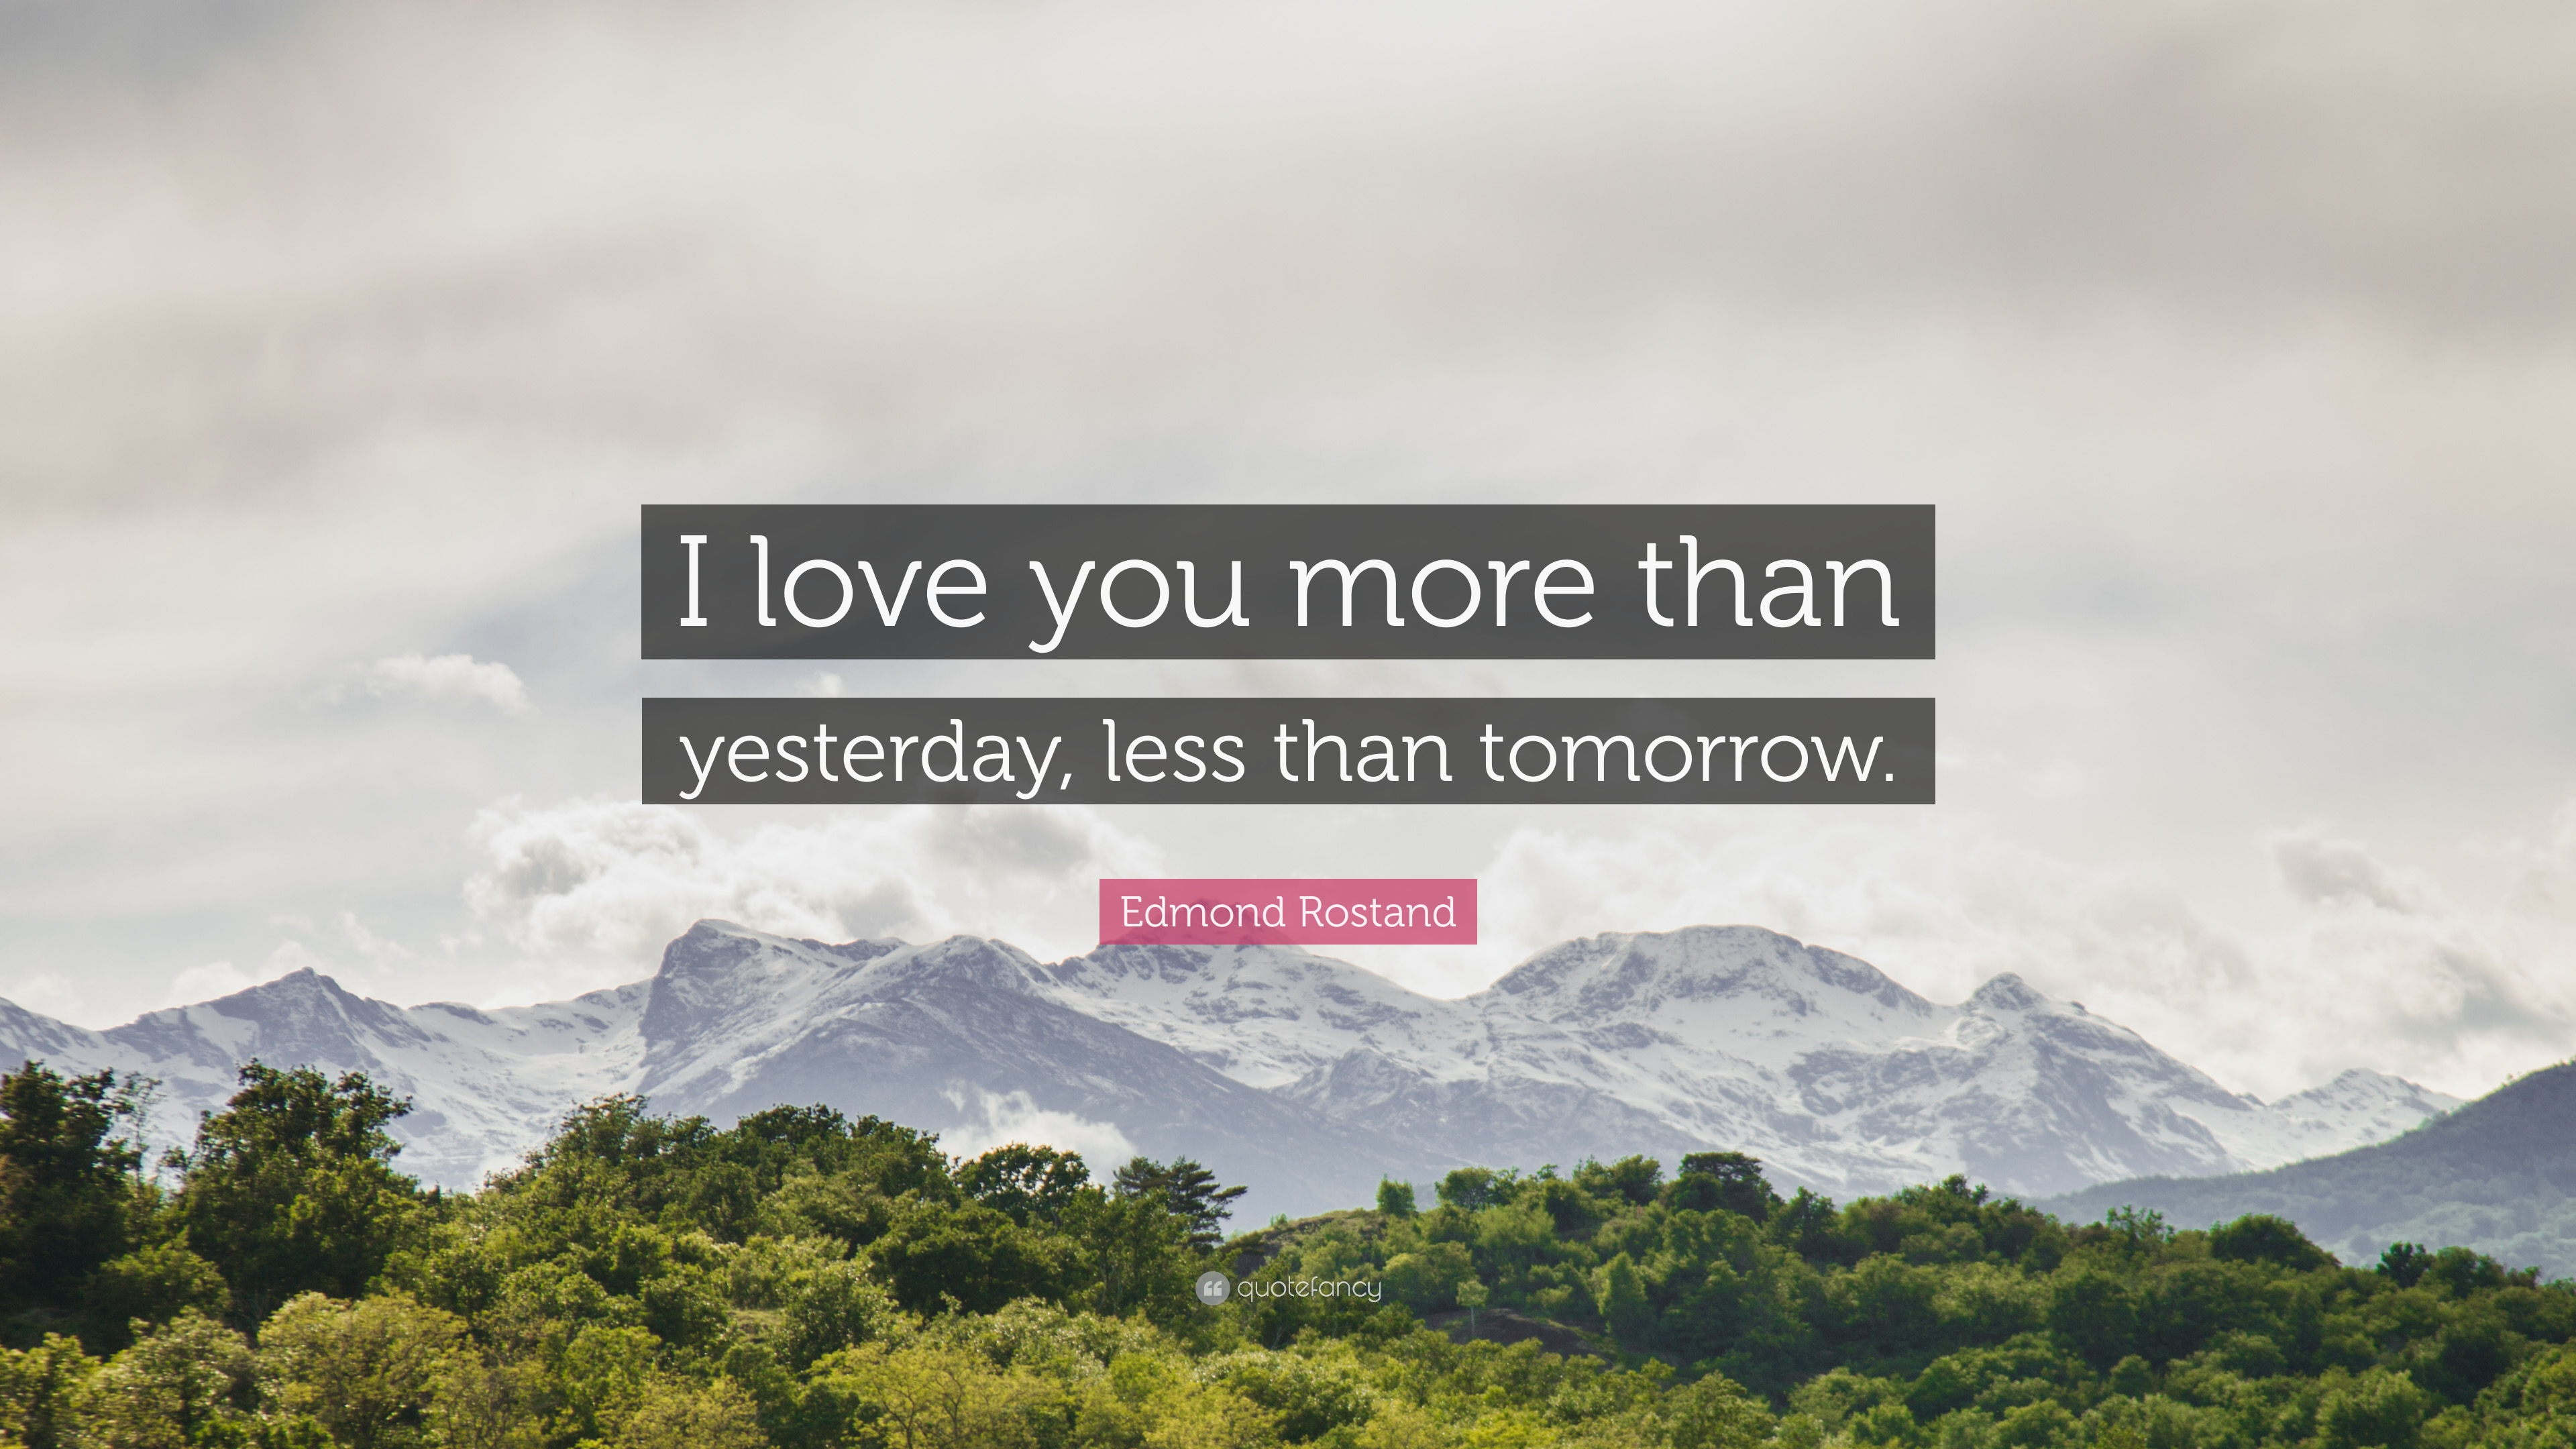 i love you more than yesterday and less than tomorrow